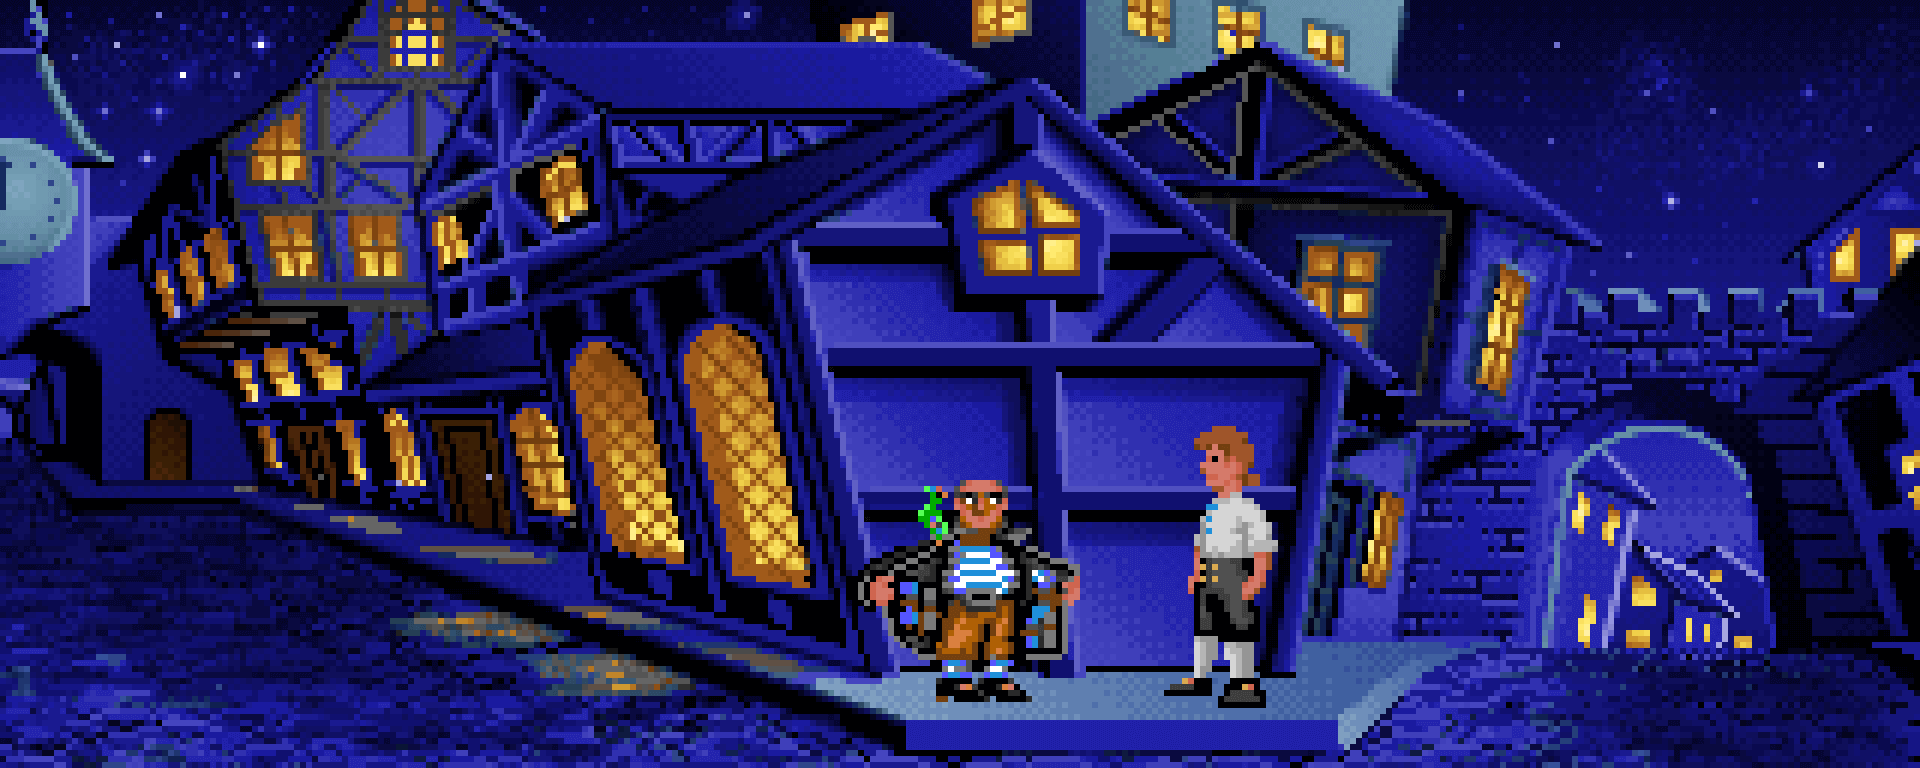 Game Quotes from Monkey Island